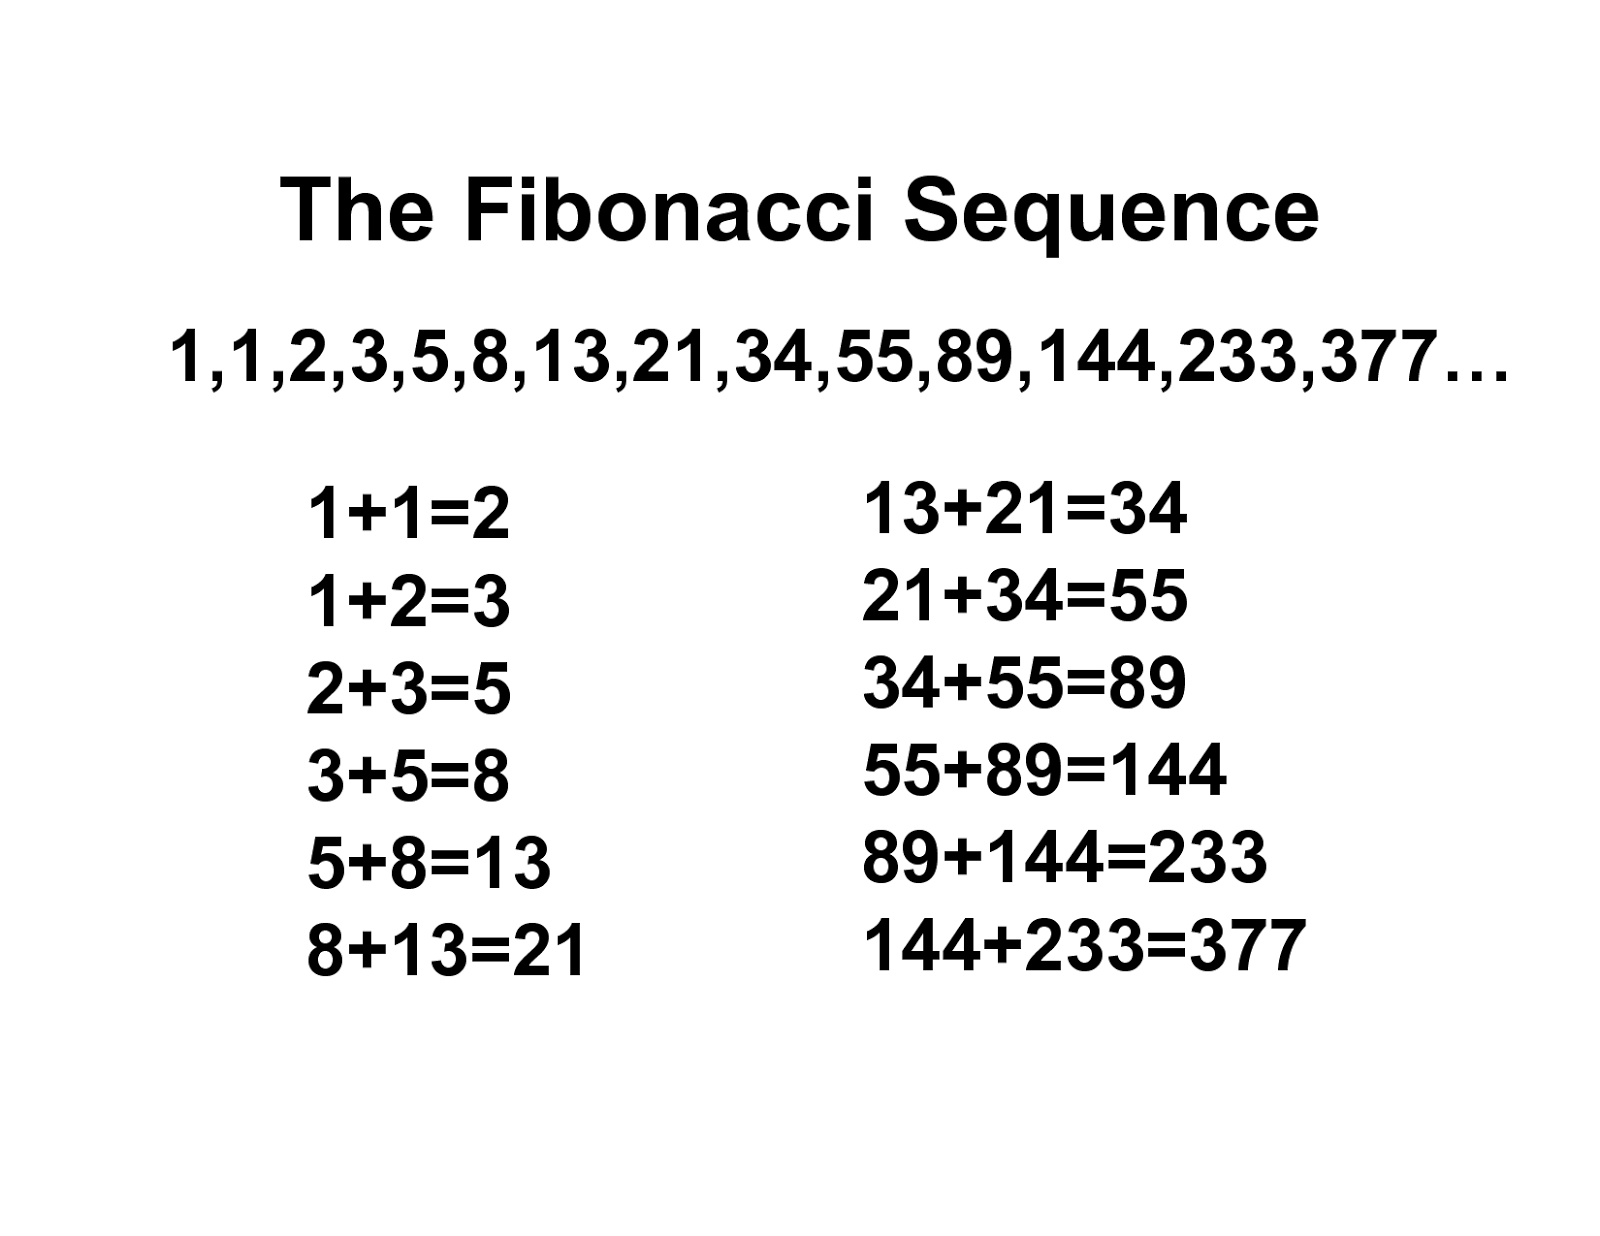 relationship between the golden ratio and fibonacci sequence numbers